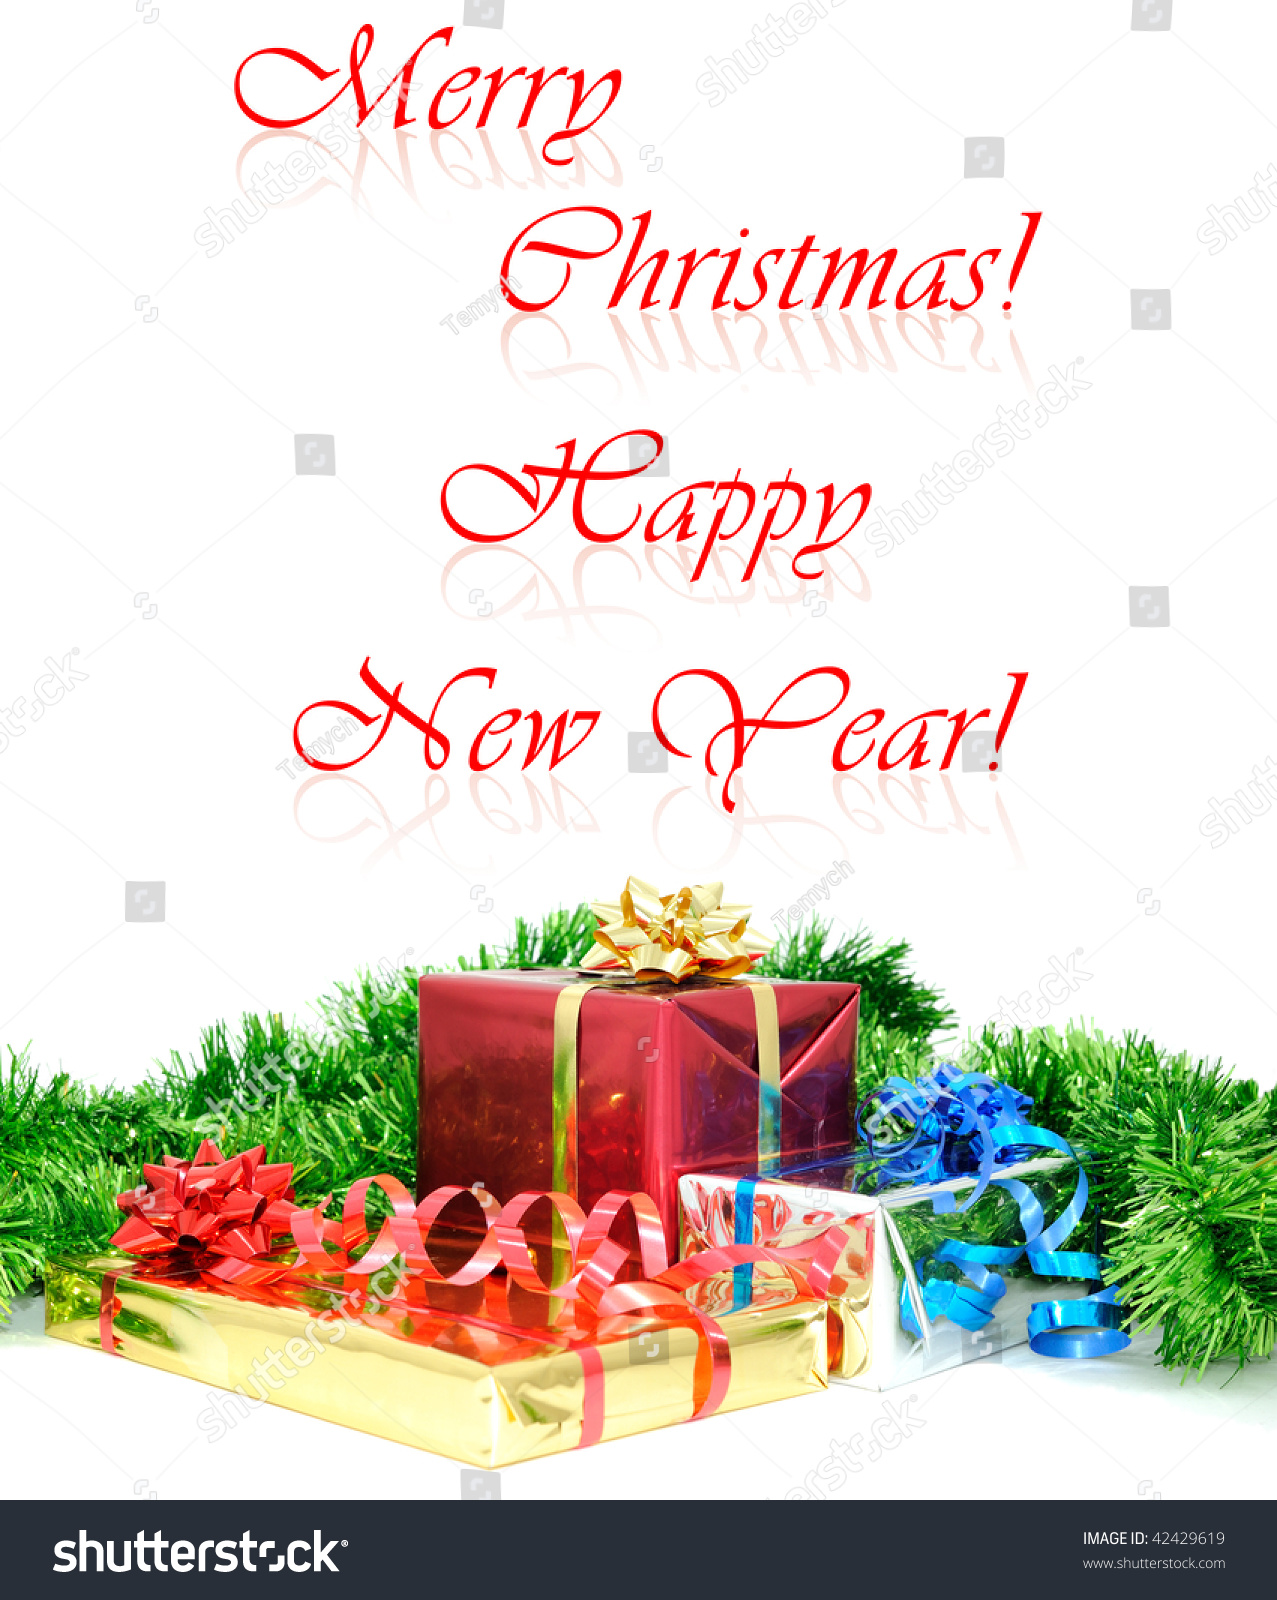 Merry Christmas Happy New Year Greeting Photo 42429619 – New Year Greeting Card Template